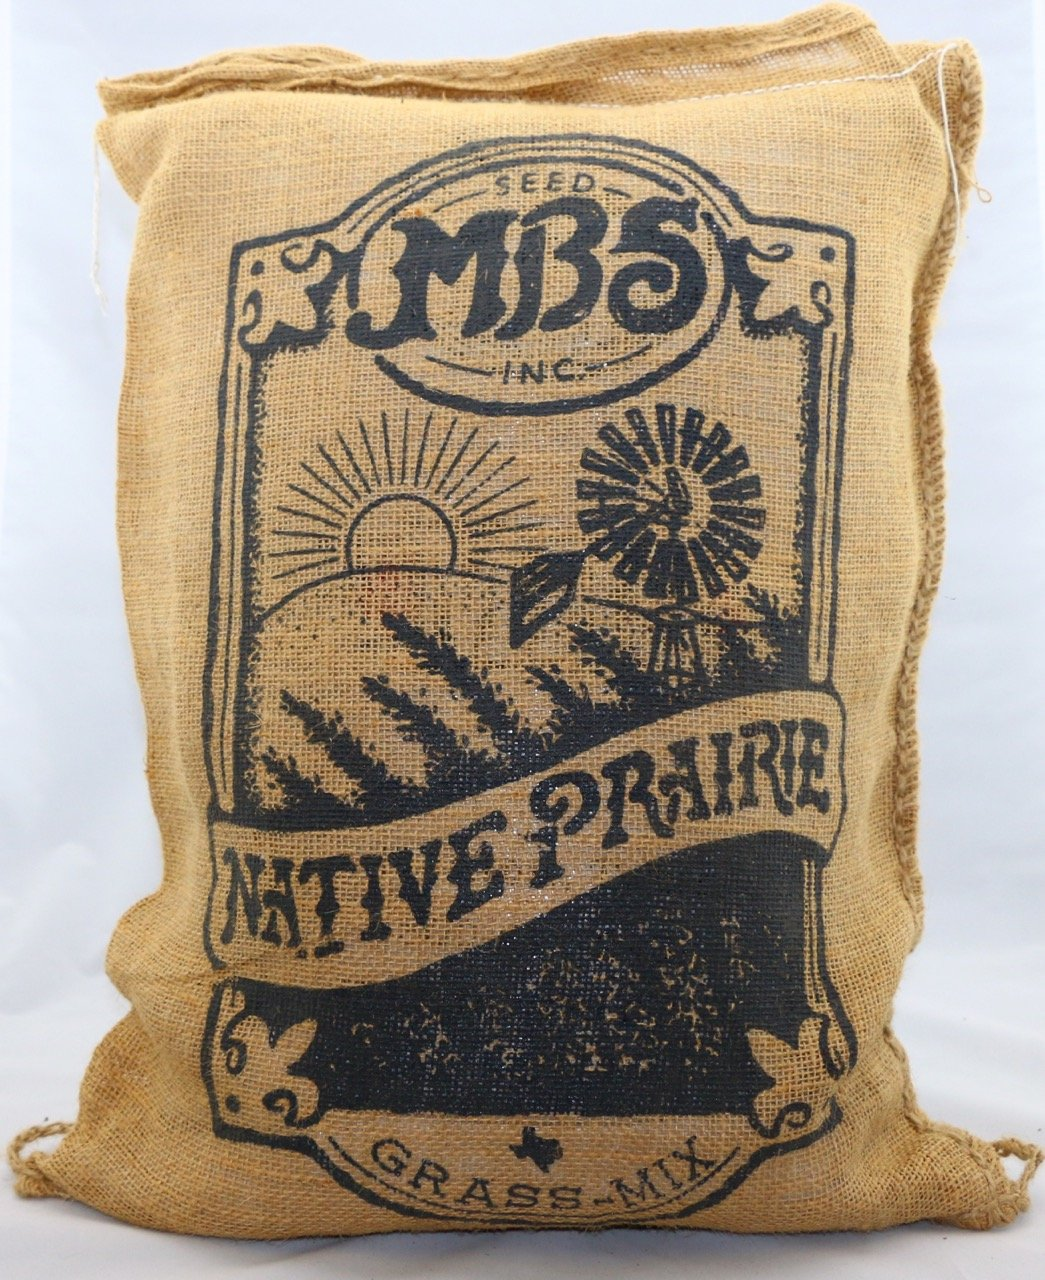 Native Prairie Grass Mix - 10 lb Bag by MBS Seed (Image #1)